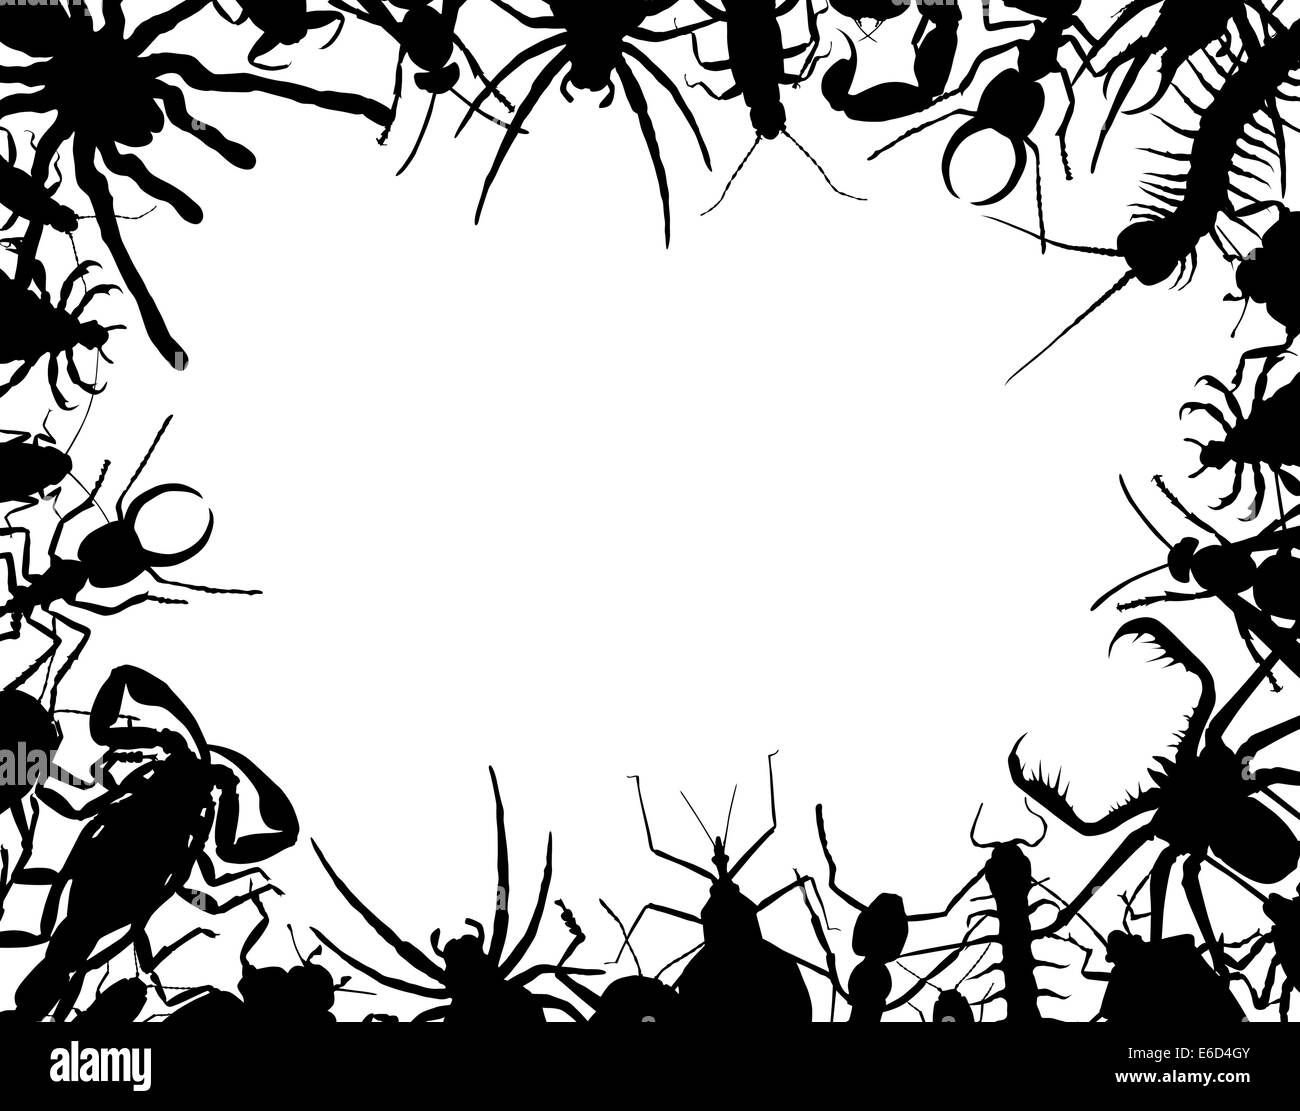 Border frame of editable vector outlines of insects and other invertebrates - Stock Vector